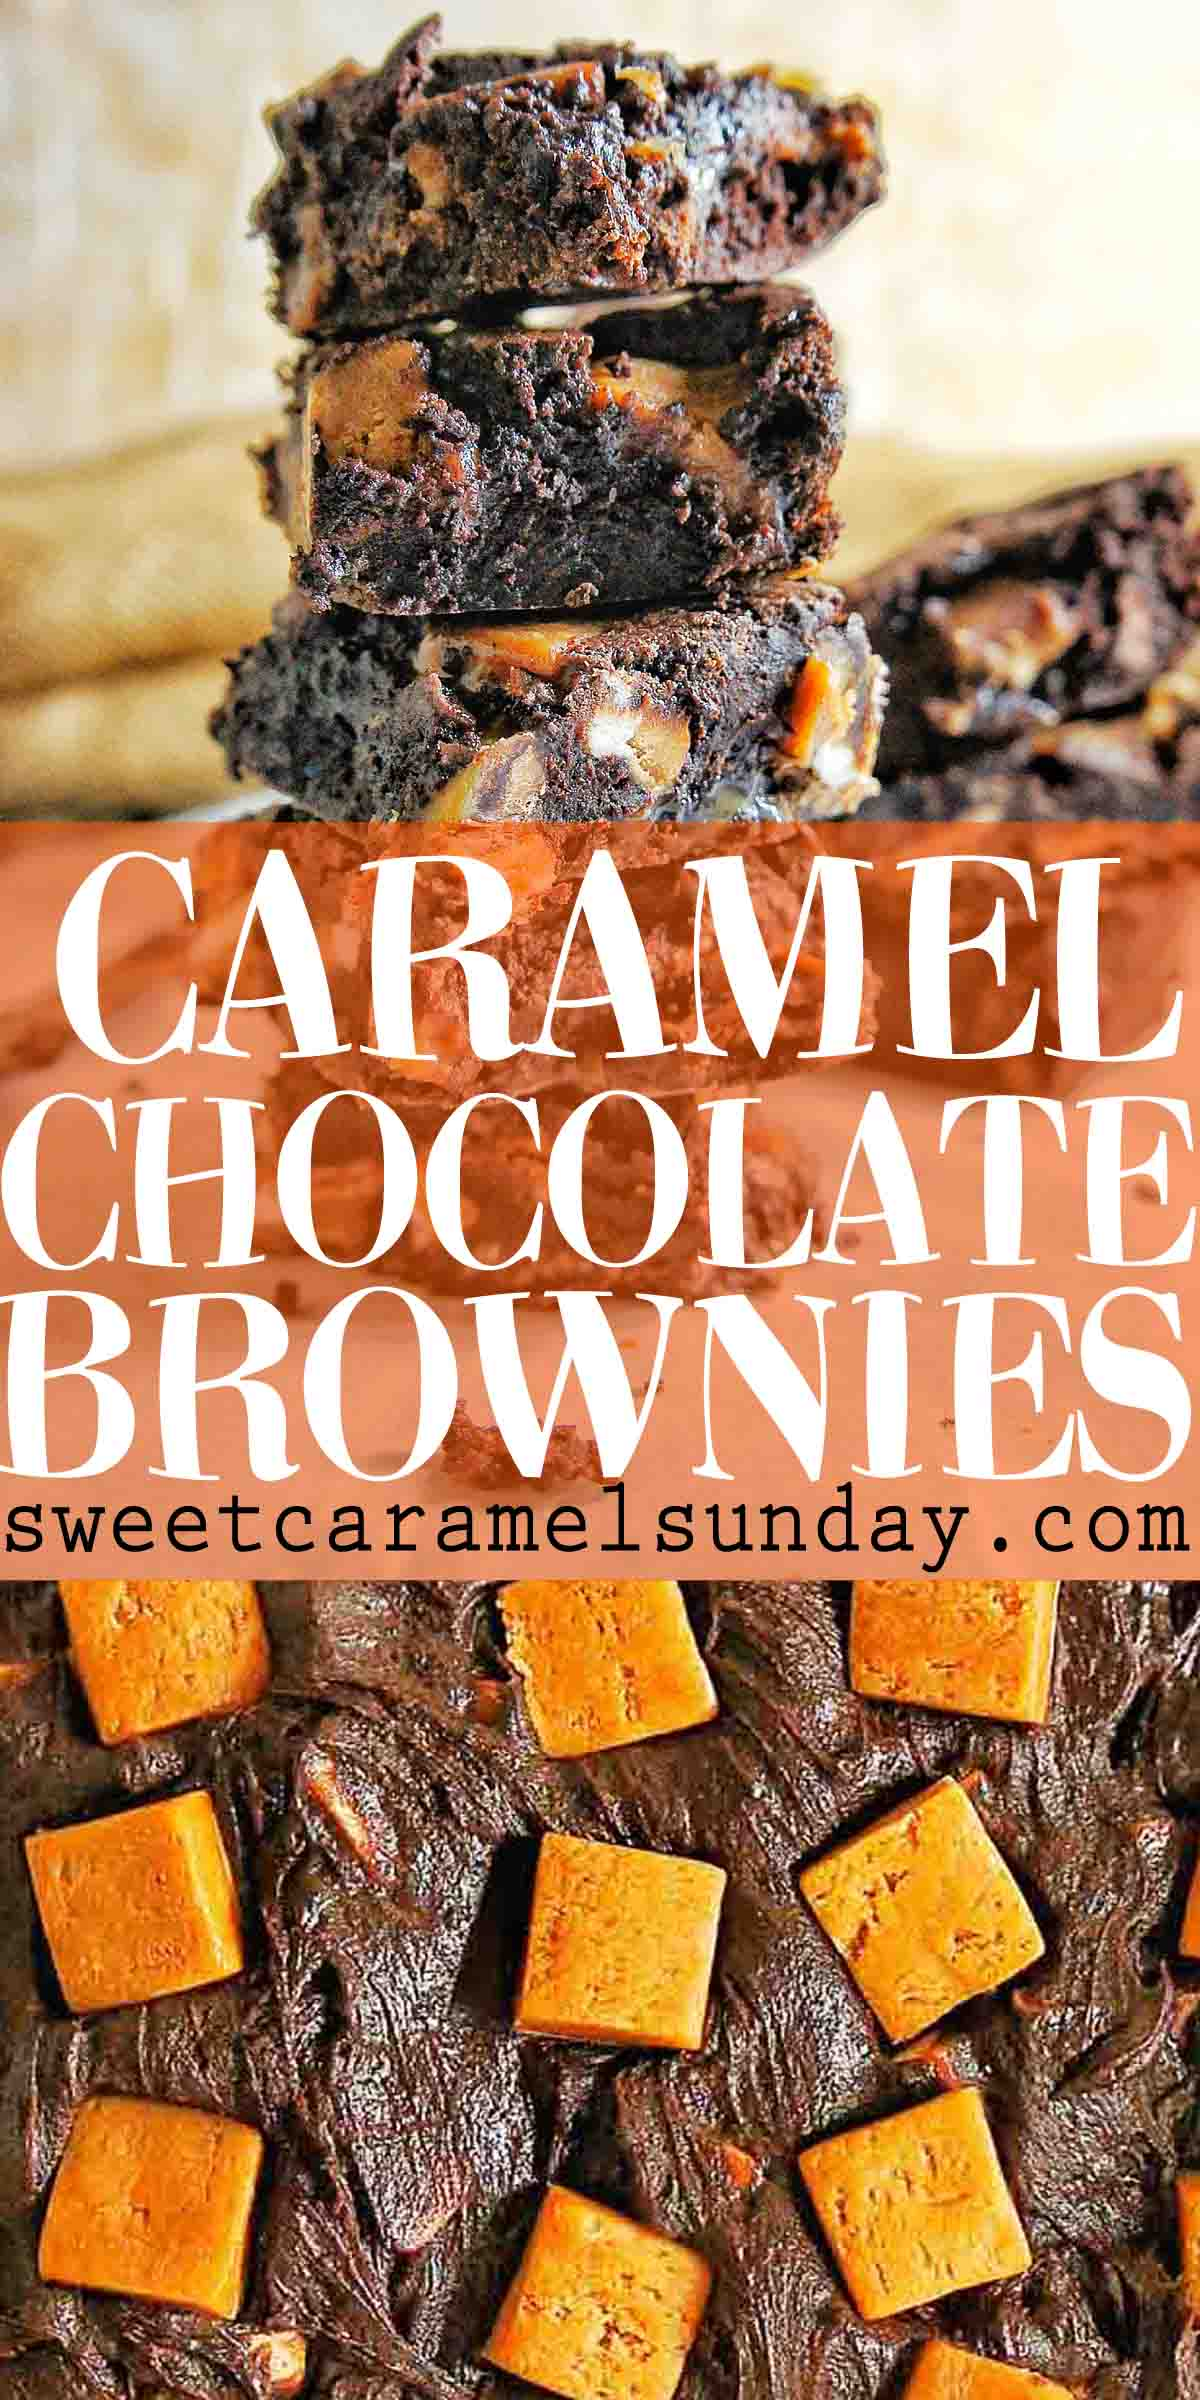 Caramel Chocolate Brownies with text overlay